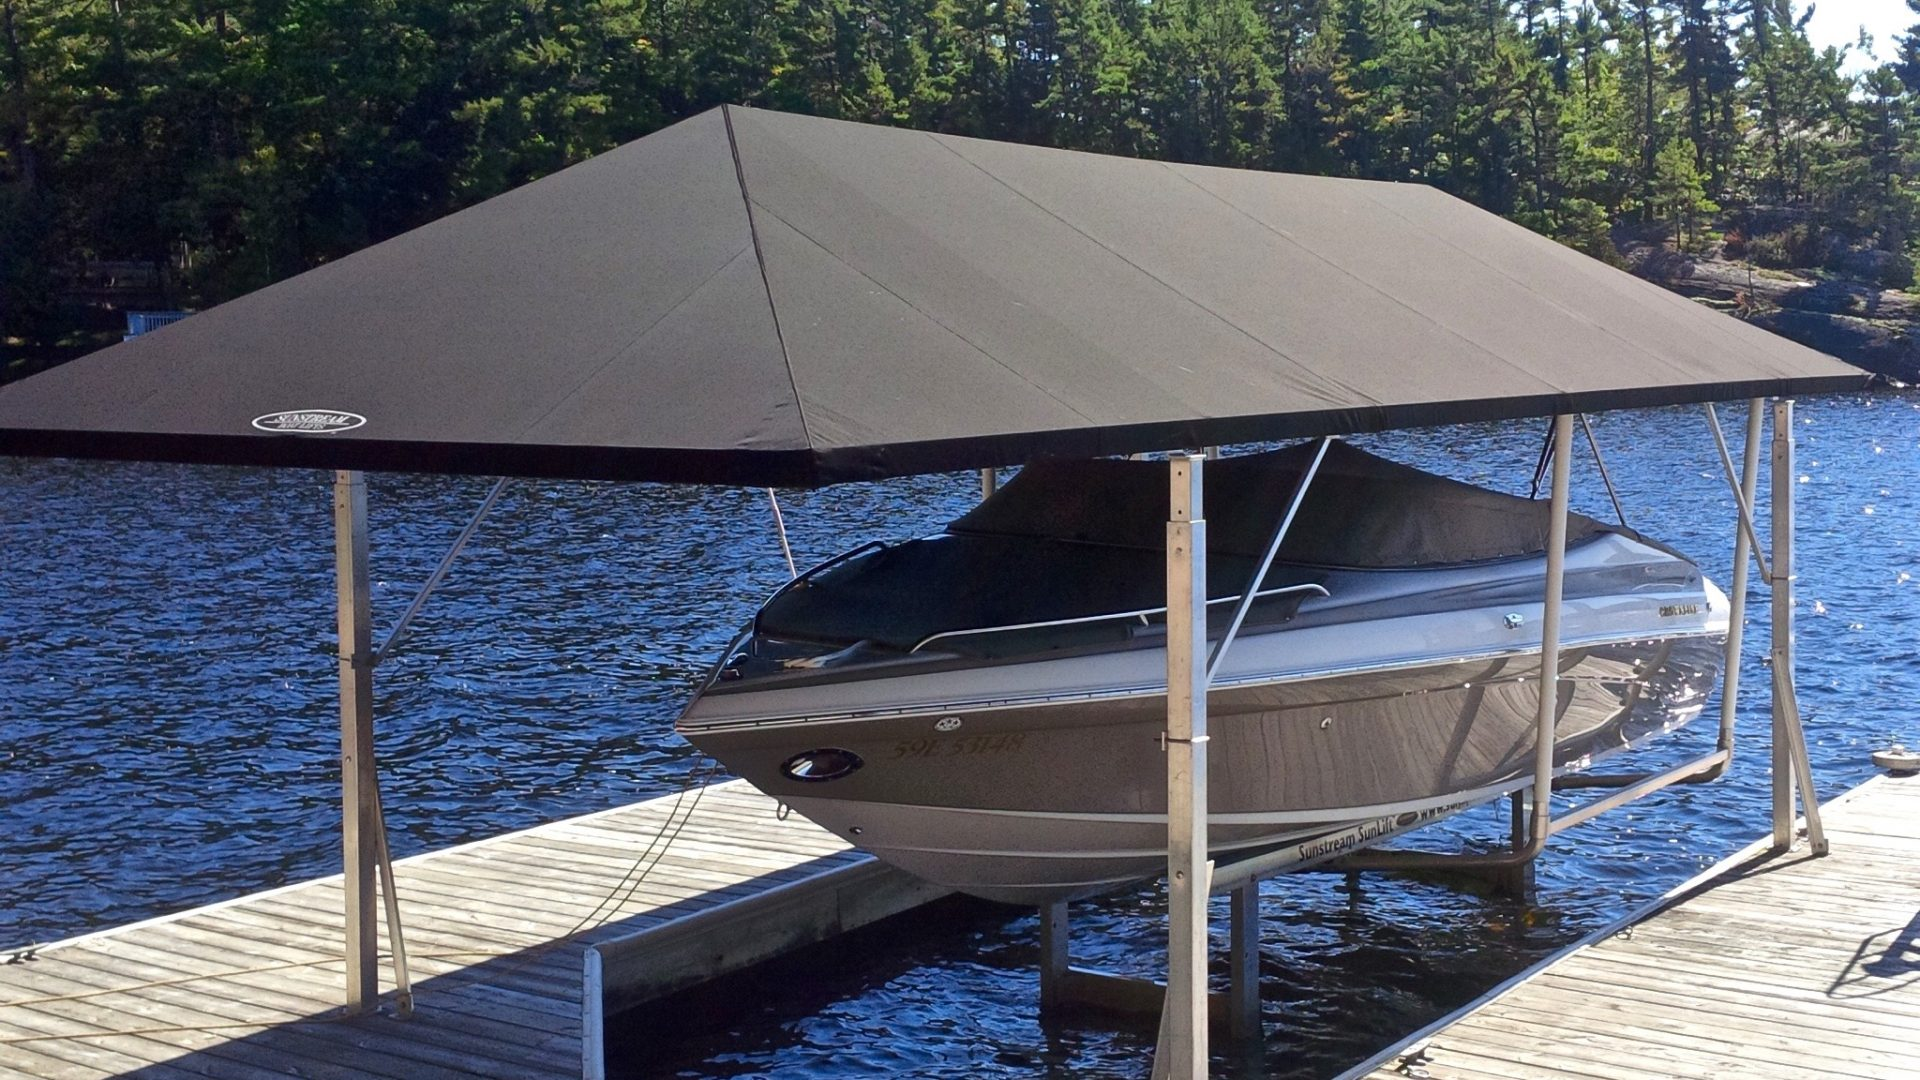 Canopy Covers For Boat Lifts - Free boat building plans